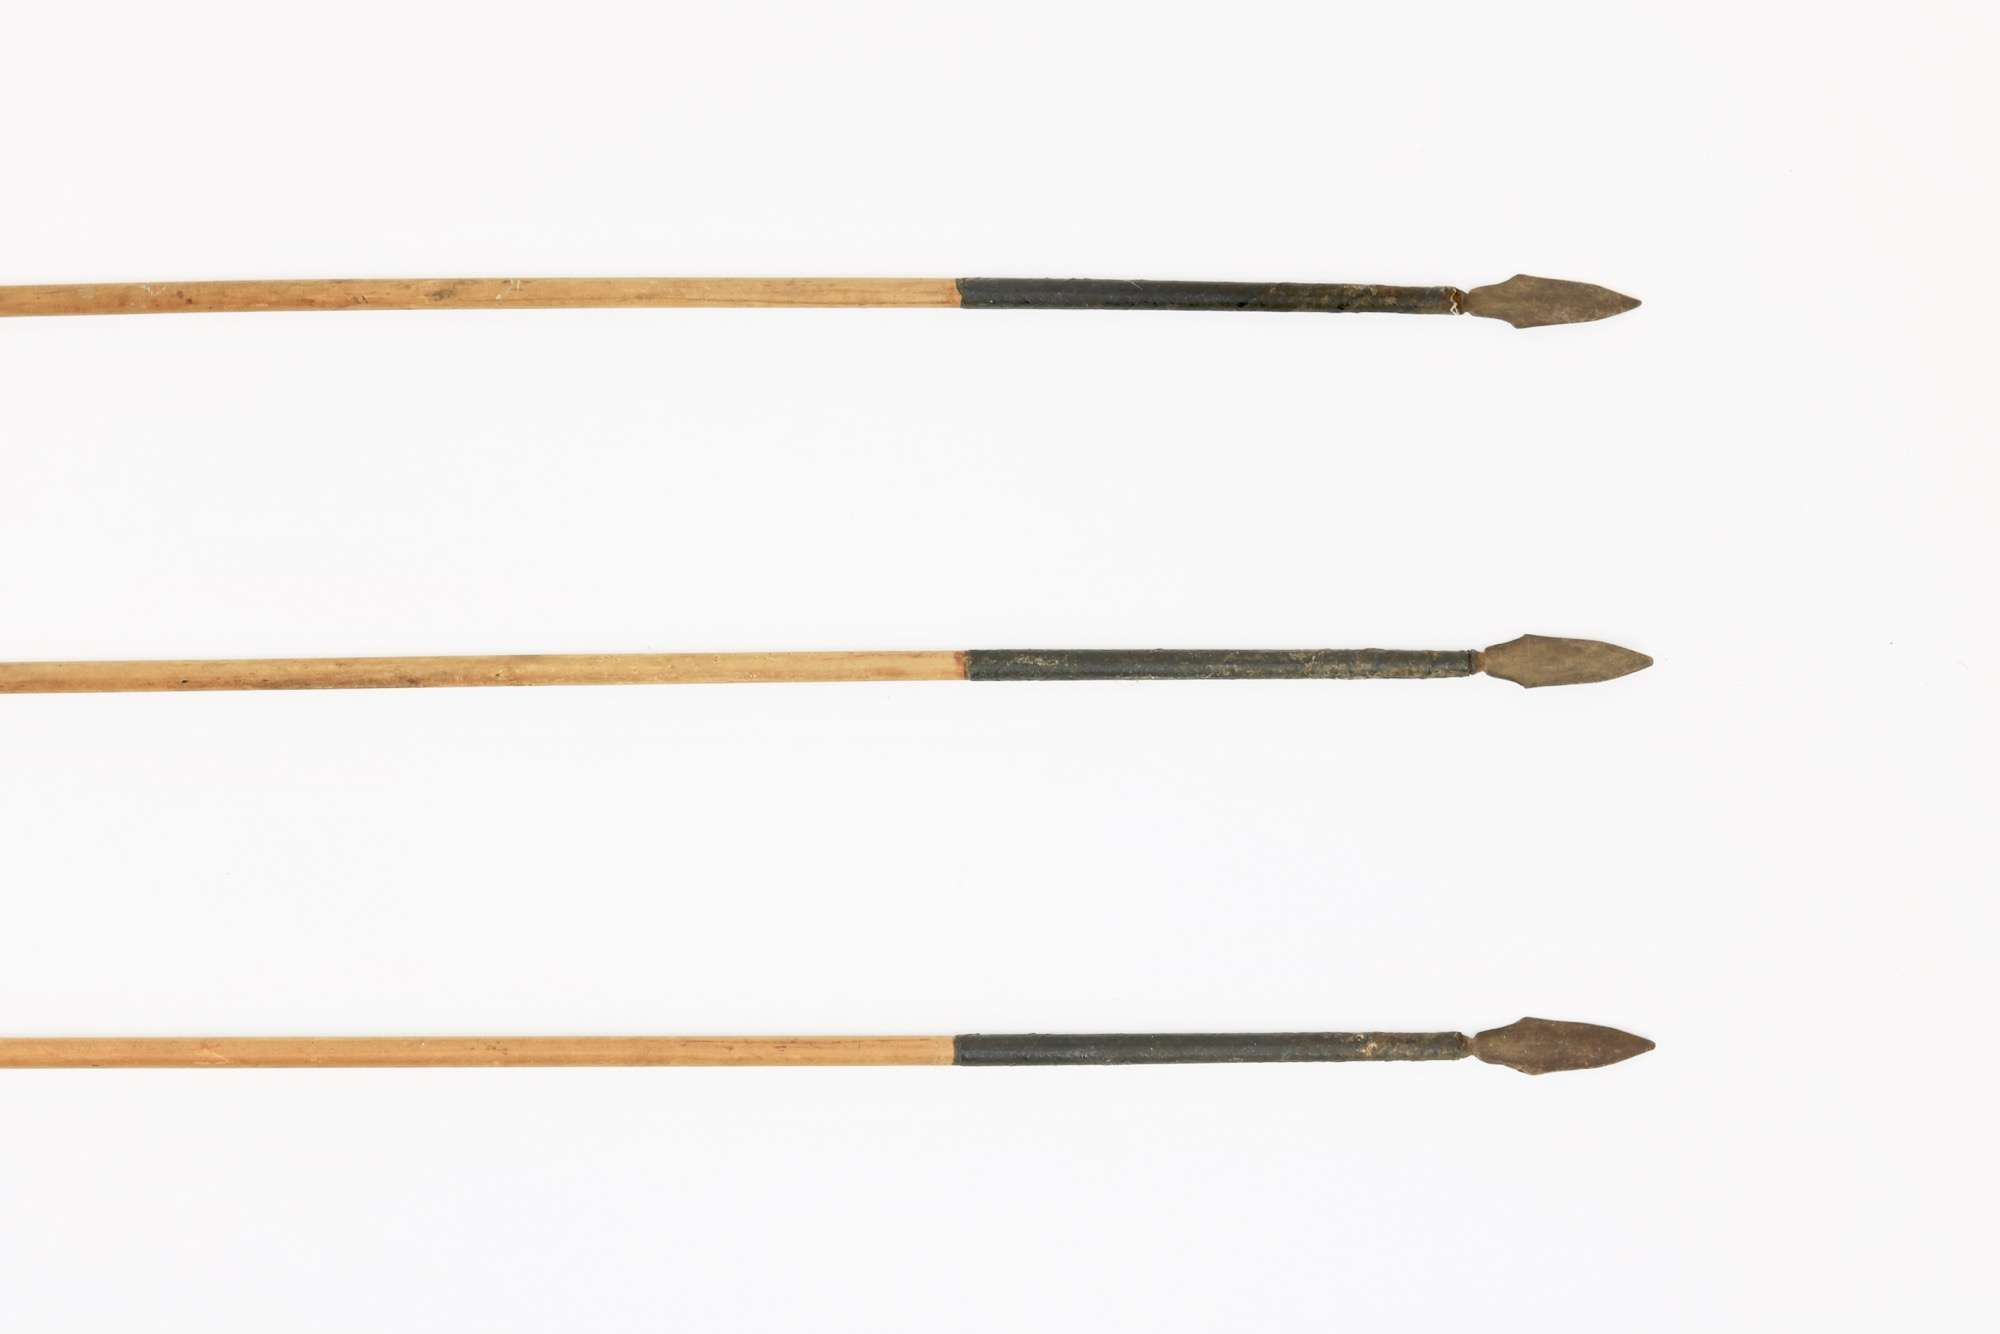 Chinese arrows